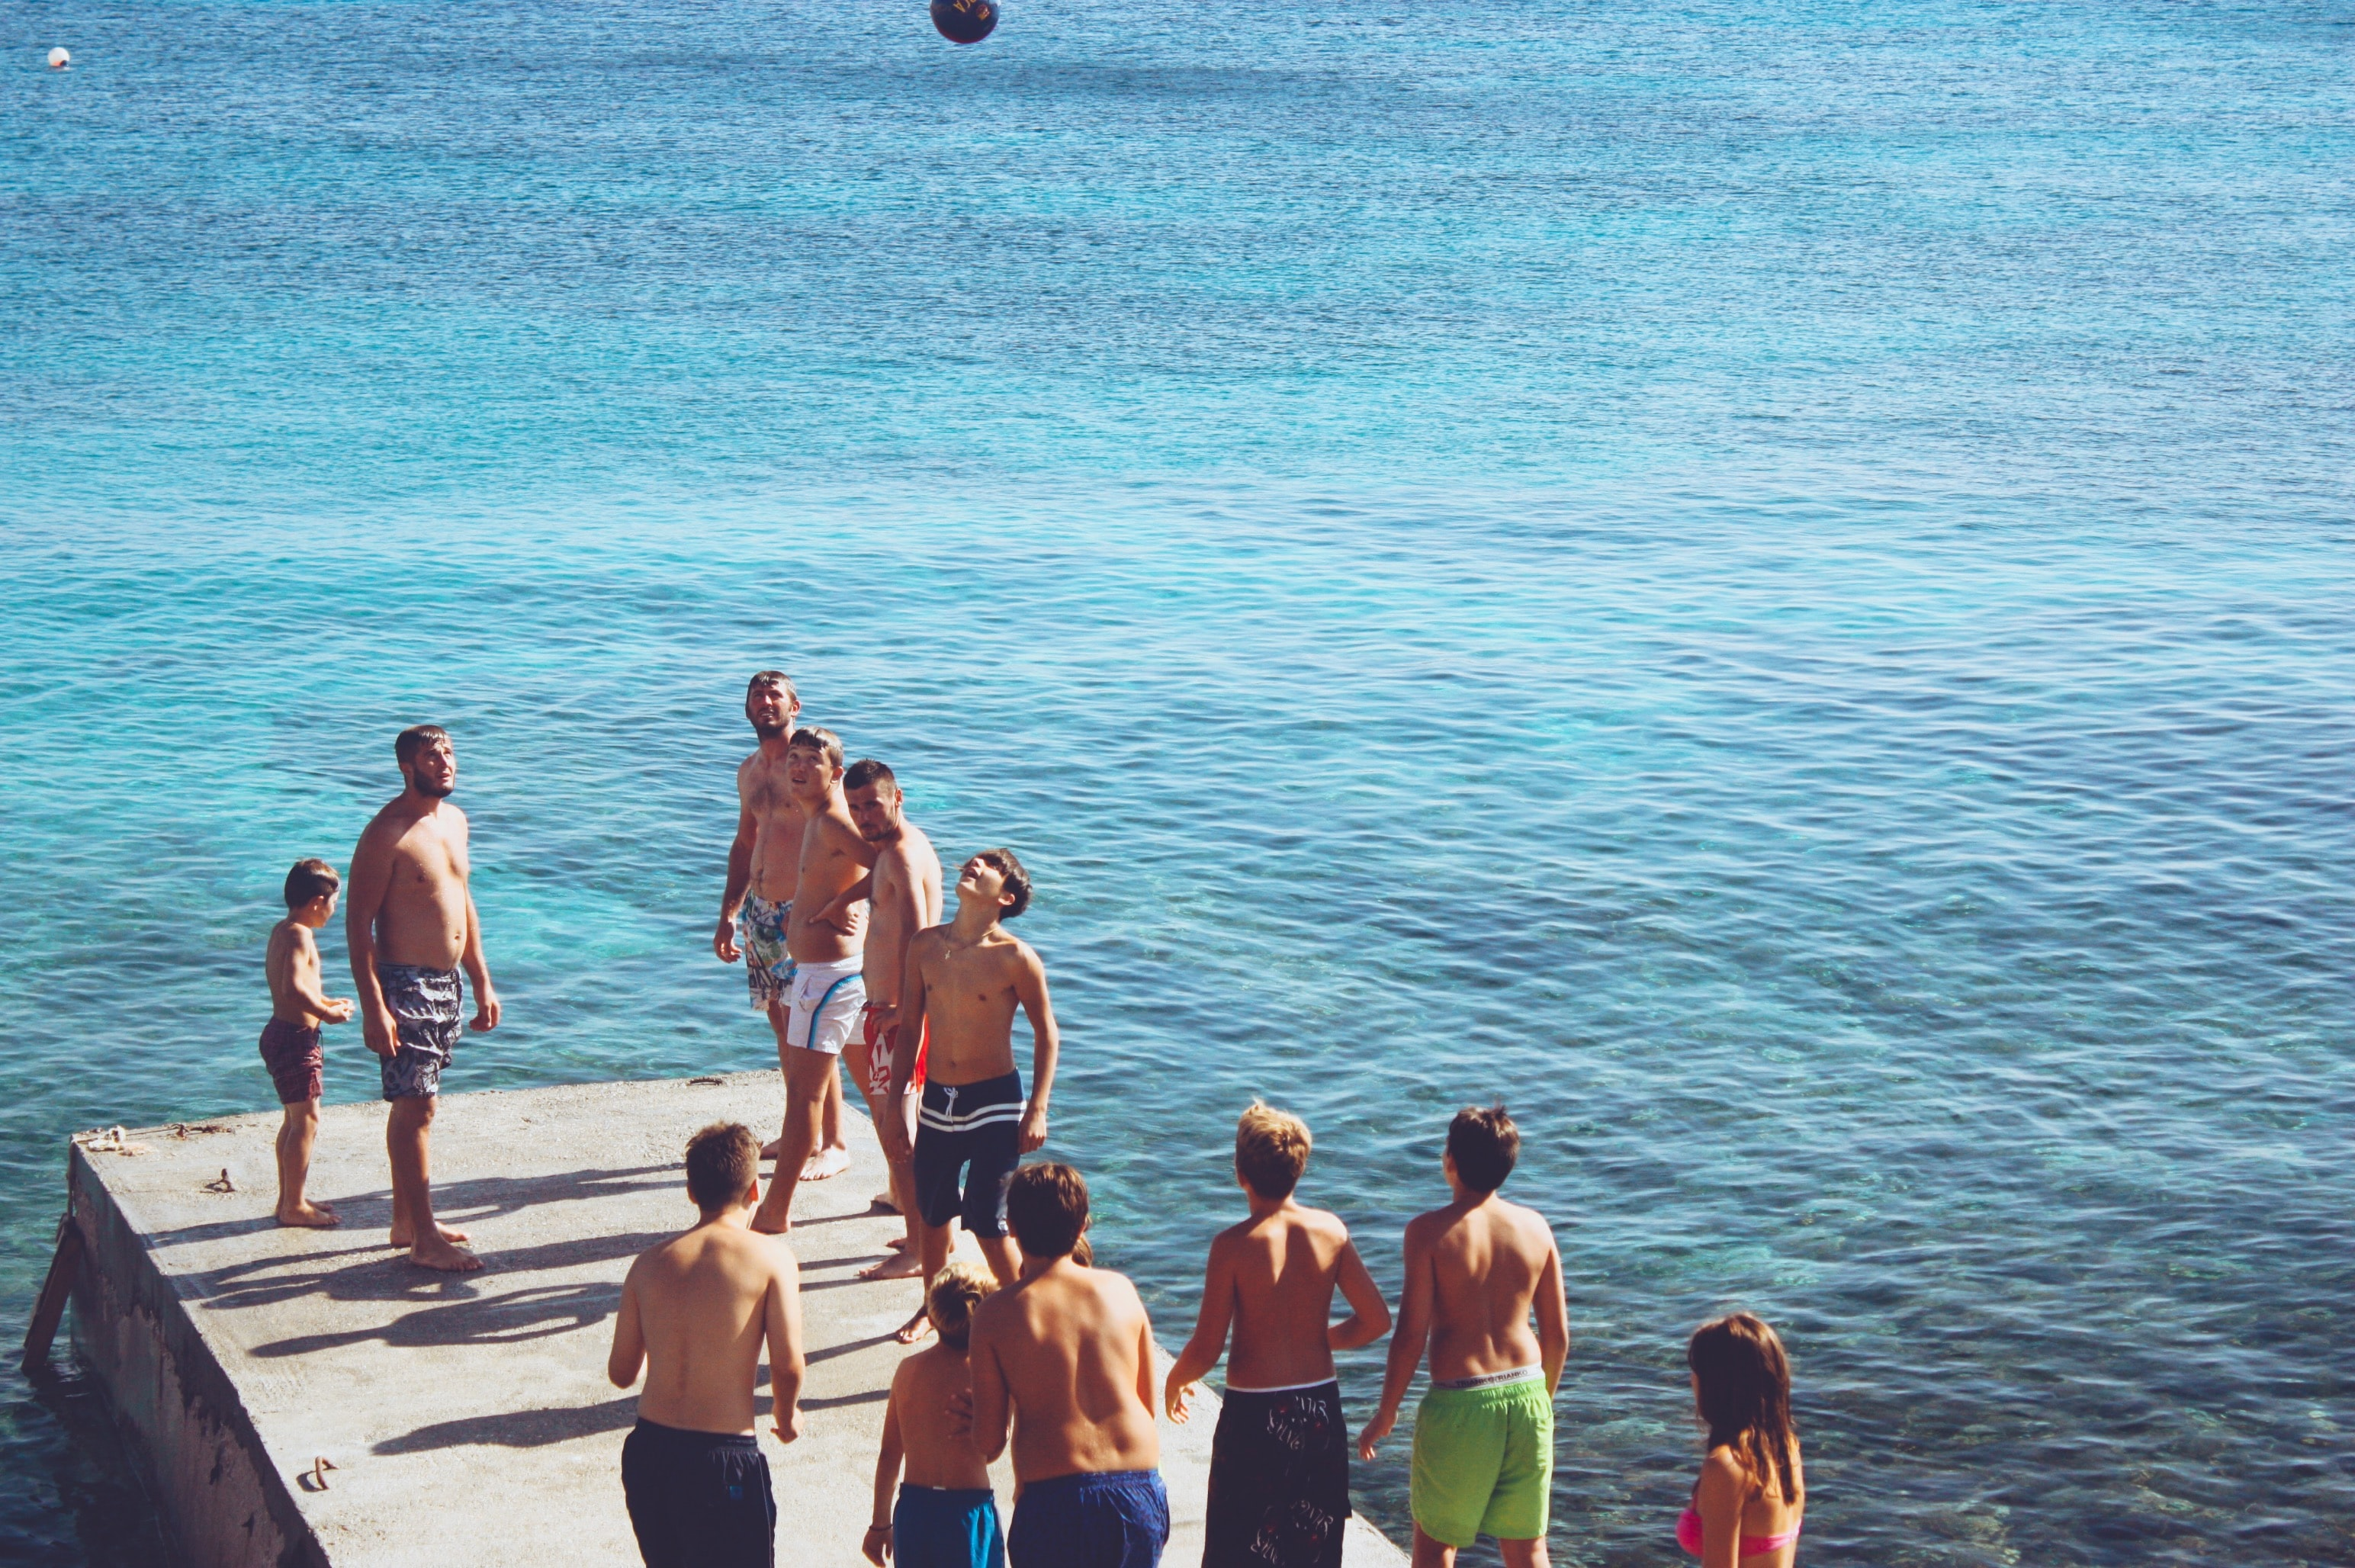 group of people playing ball on wooden dock